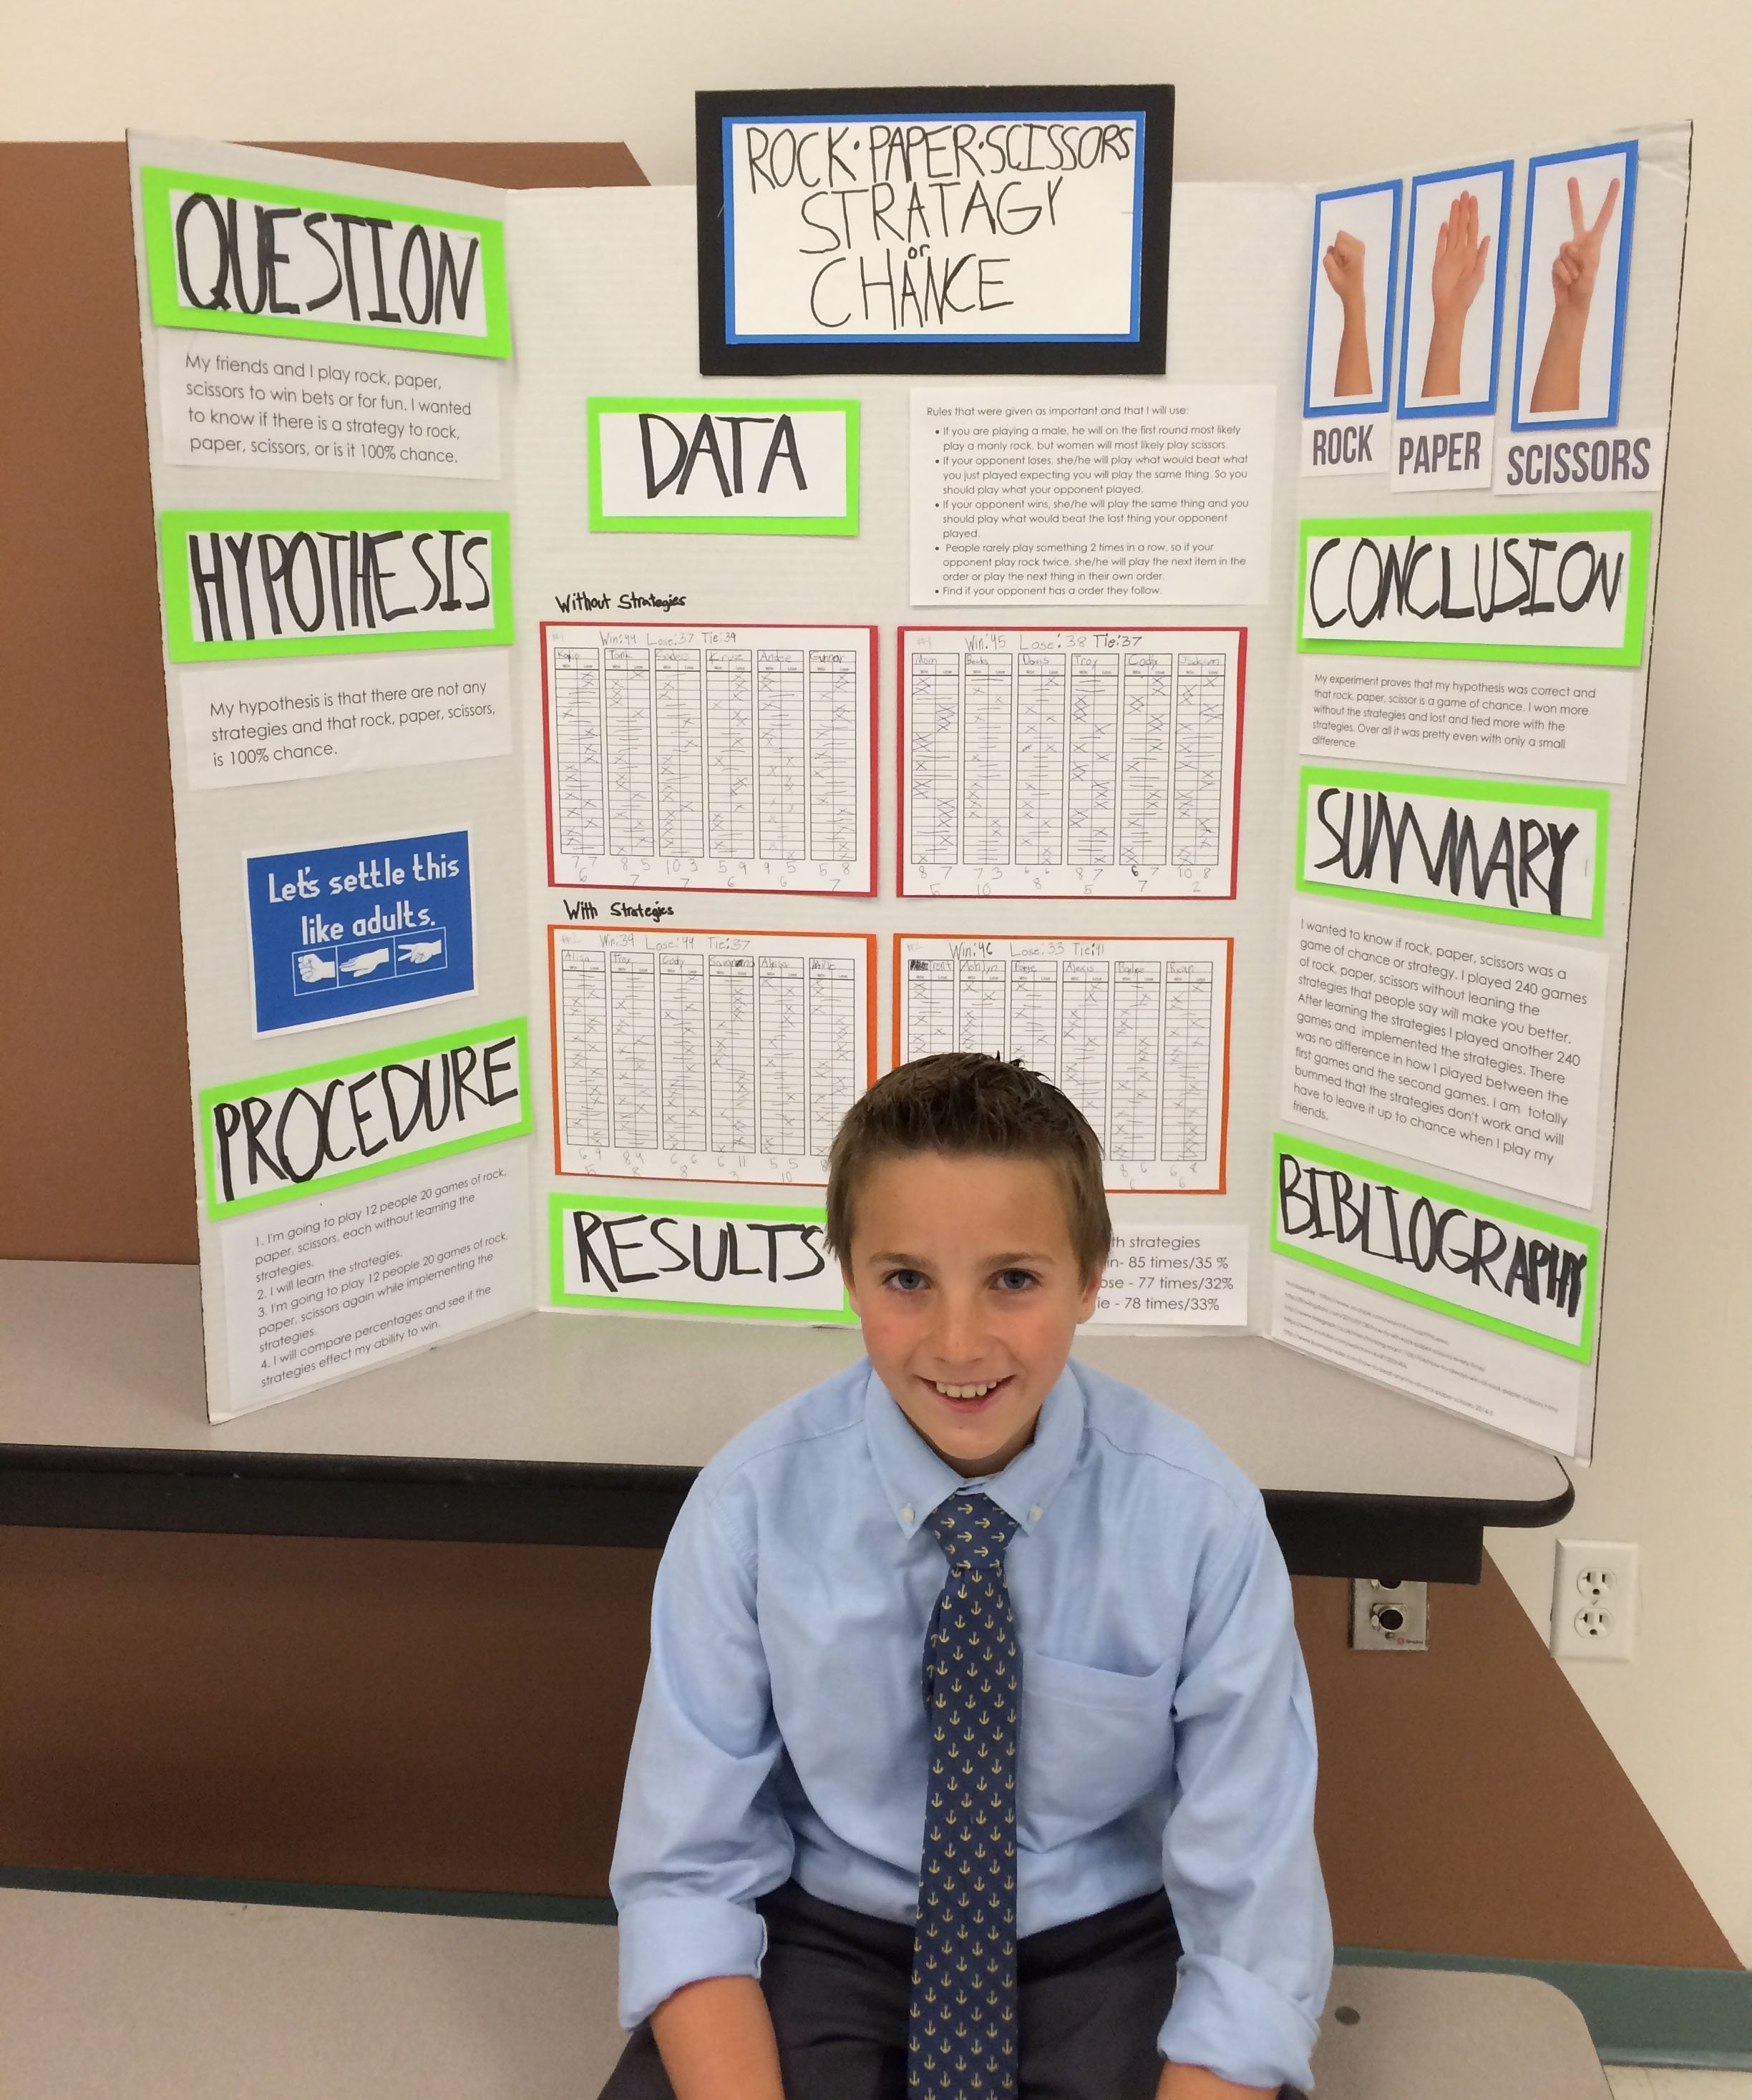 10 Perfect Good Science Fair Project Ideas how to rock your science fair project 1 2020